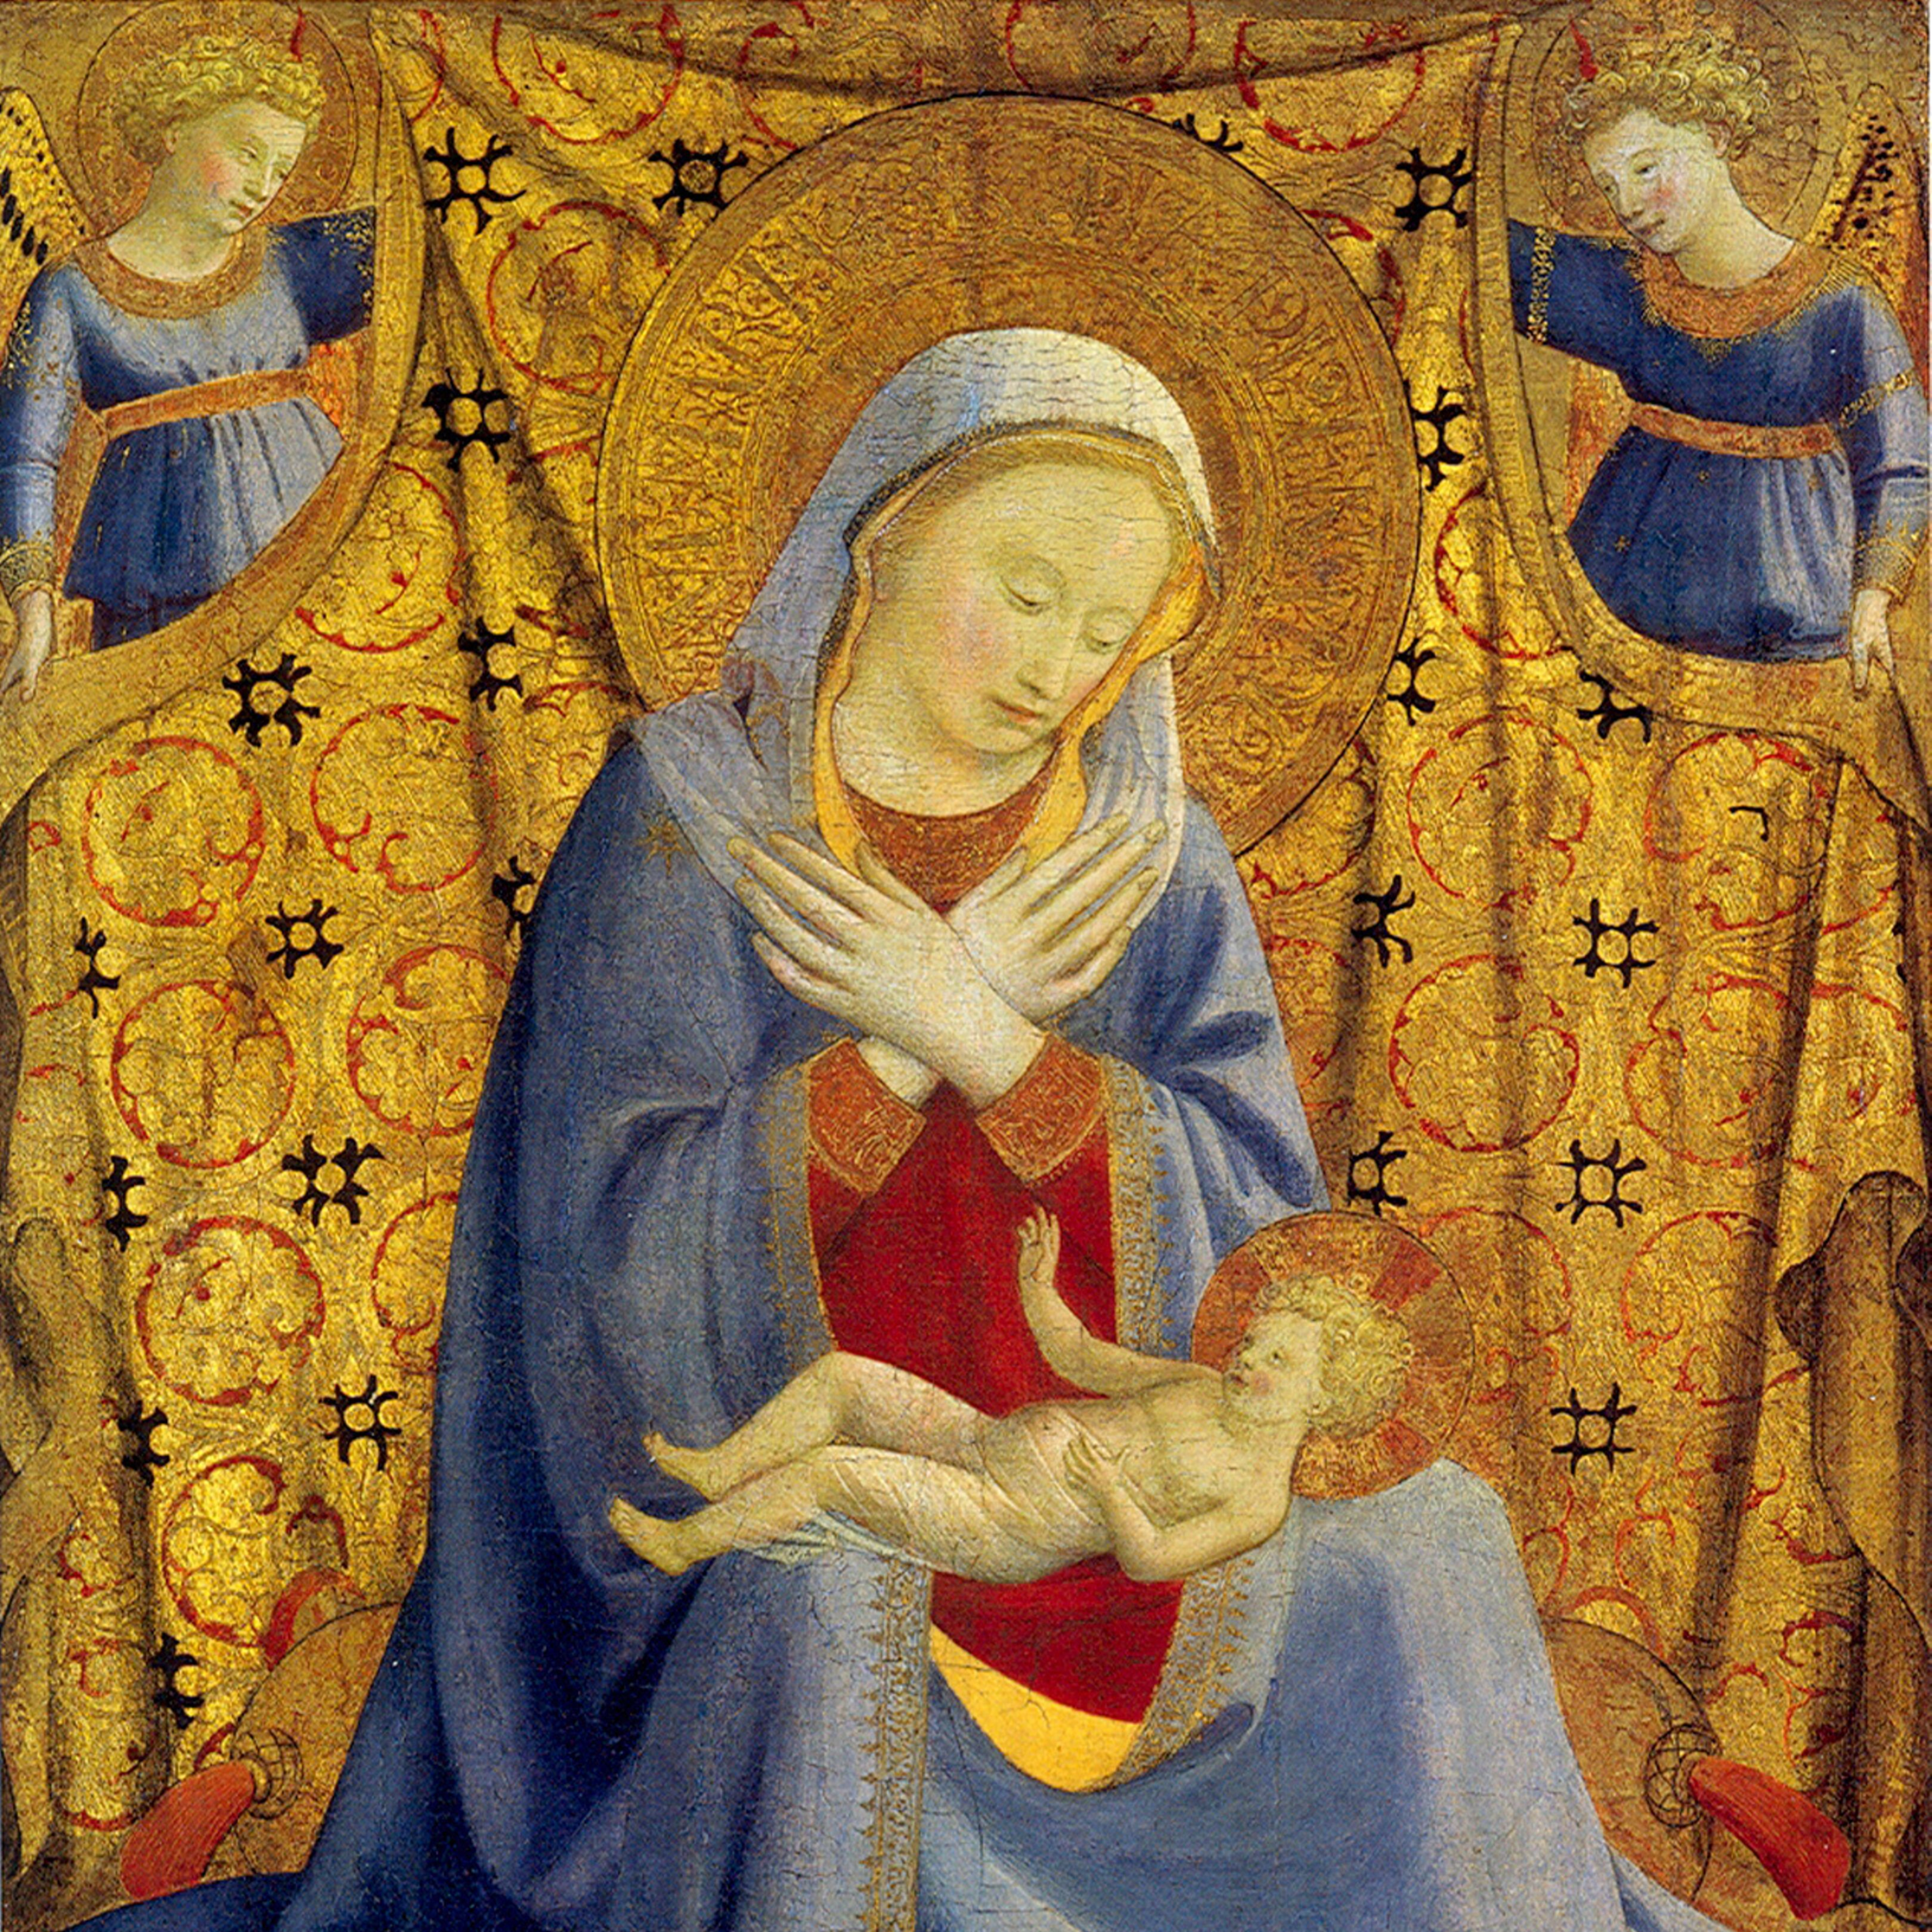 Chants for the blessed virgin mary -